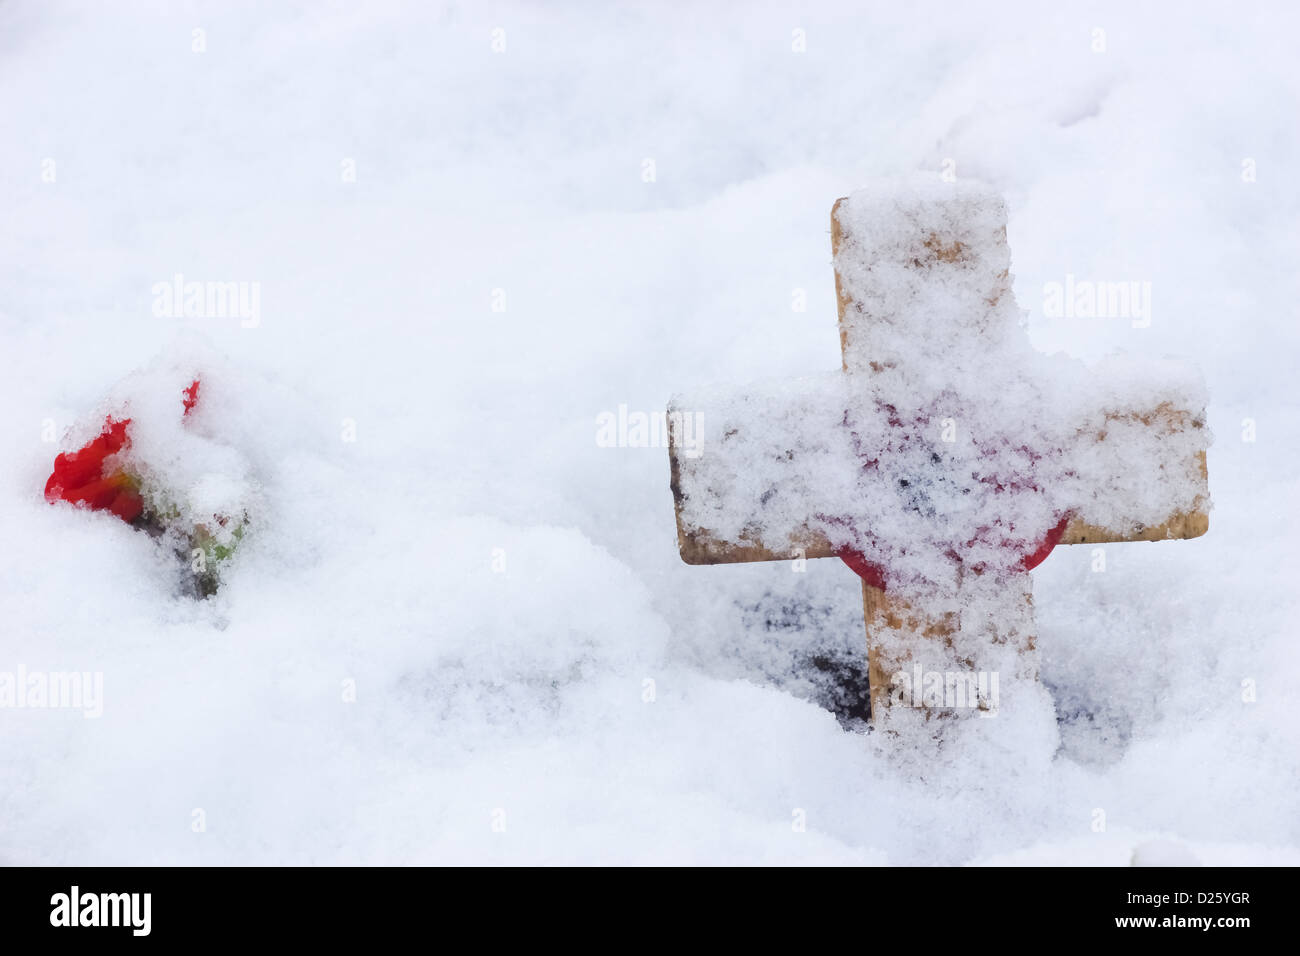 Remembrance Cross With Poppy In The Snow - Stock Image